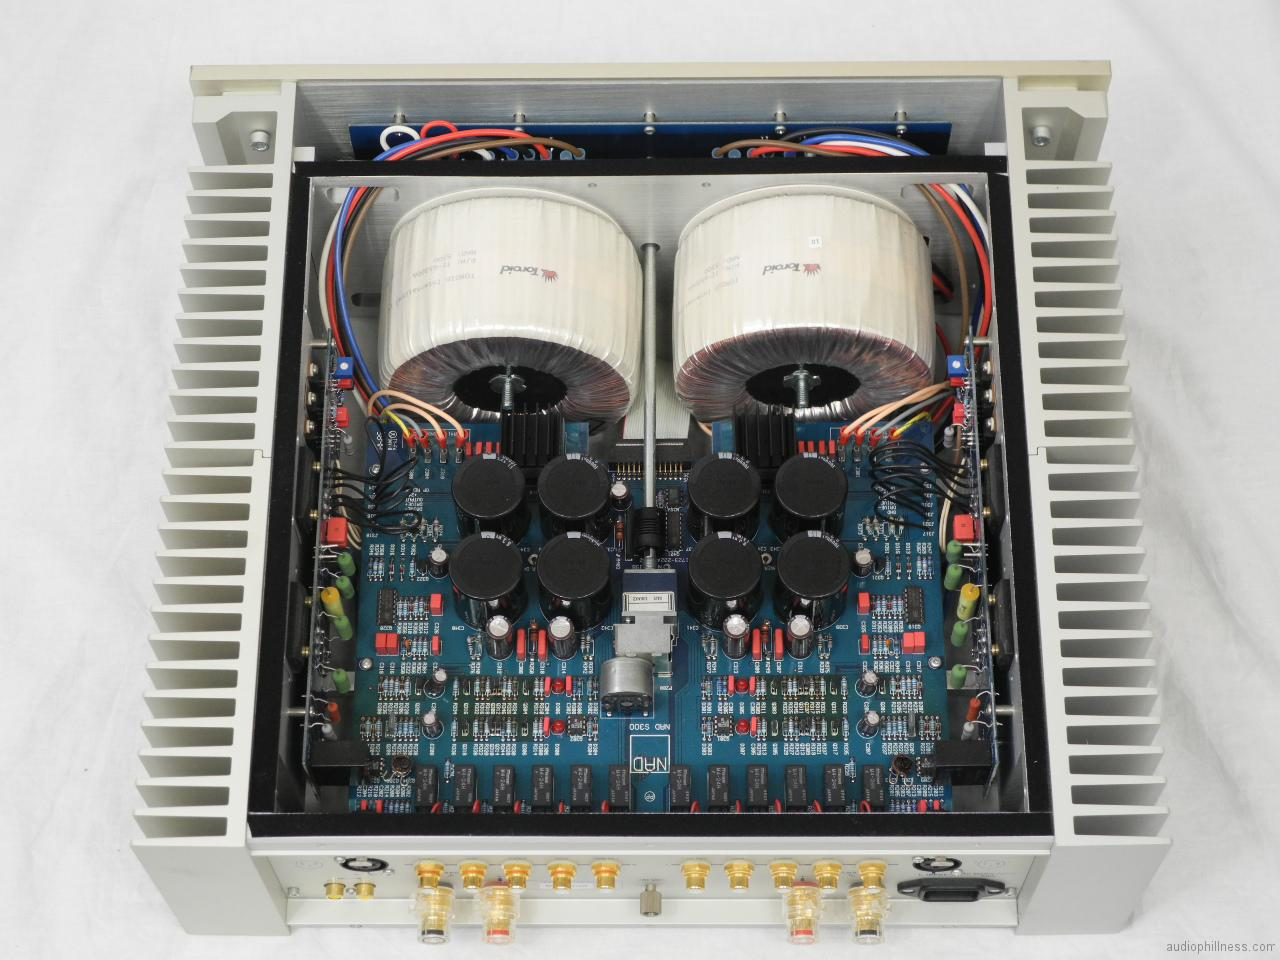 Nad Silverline S300 likewise Preparation Surfaces A Peindre Boite A Outils 1798 besides Green Series  777 Wall Transformer as well Summation Current Transformer in addition Bureau A Partager. on simple transformer